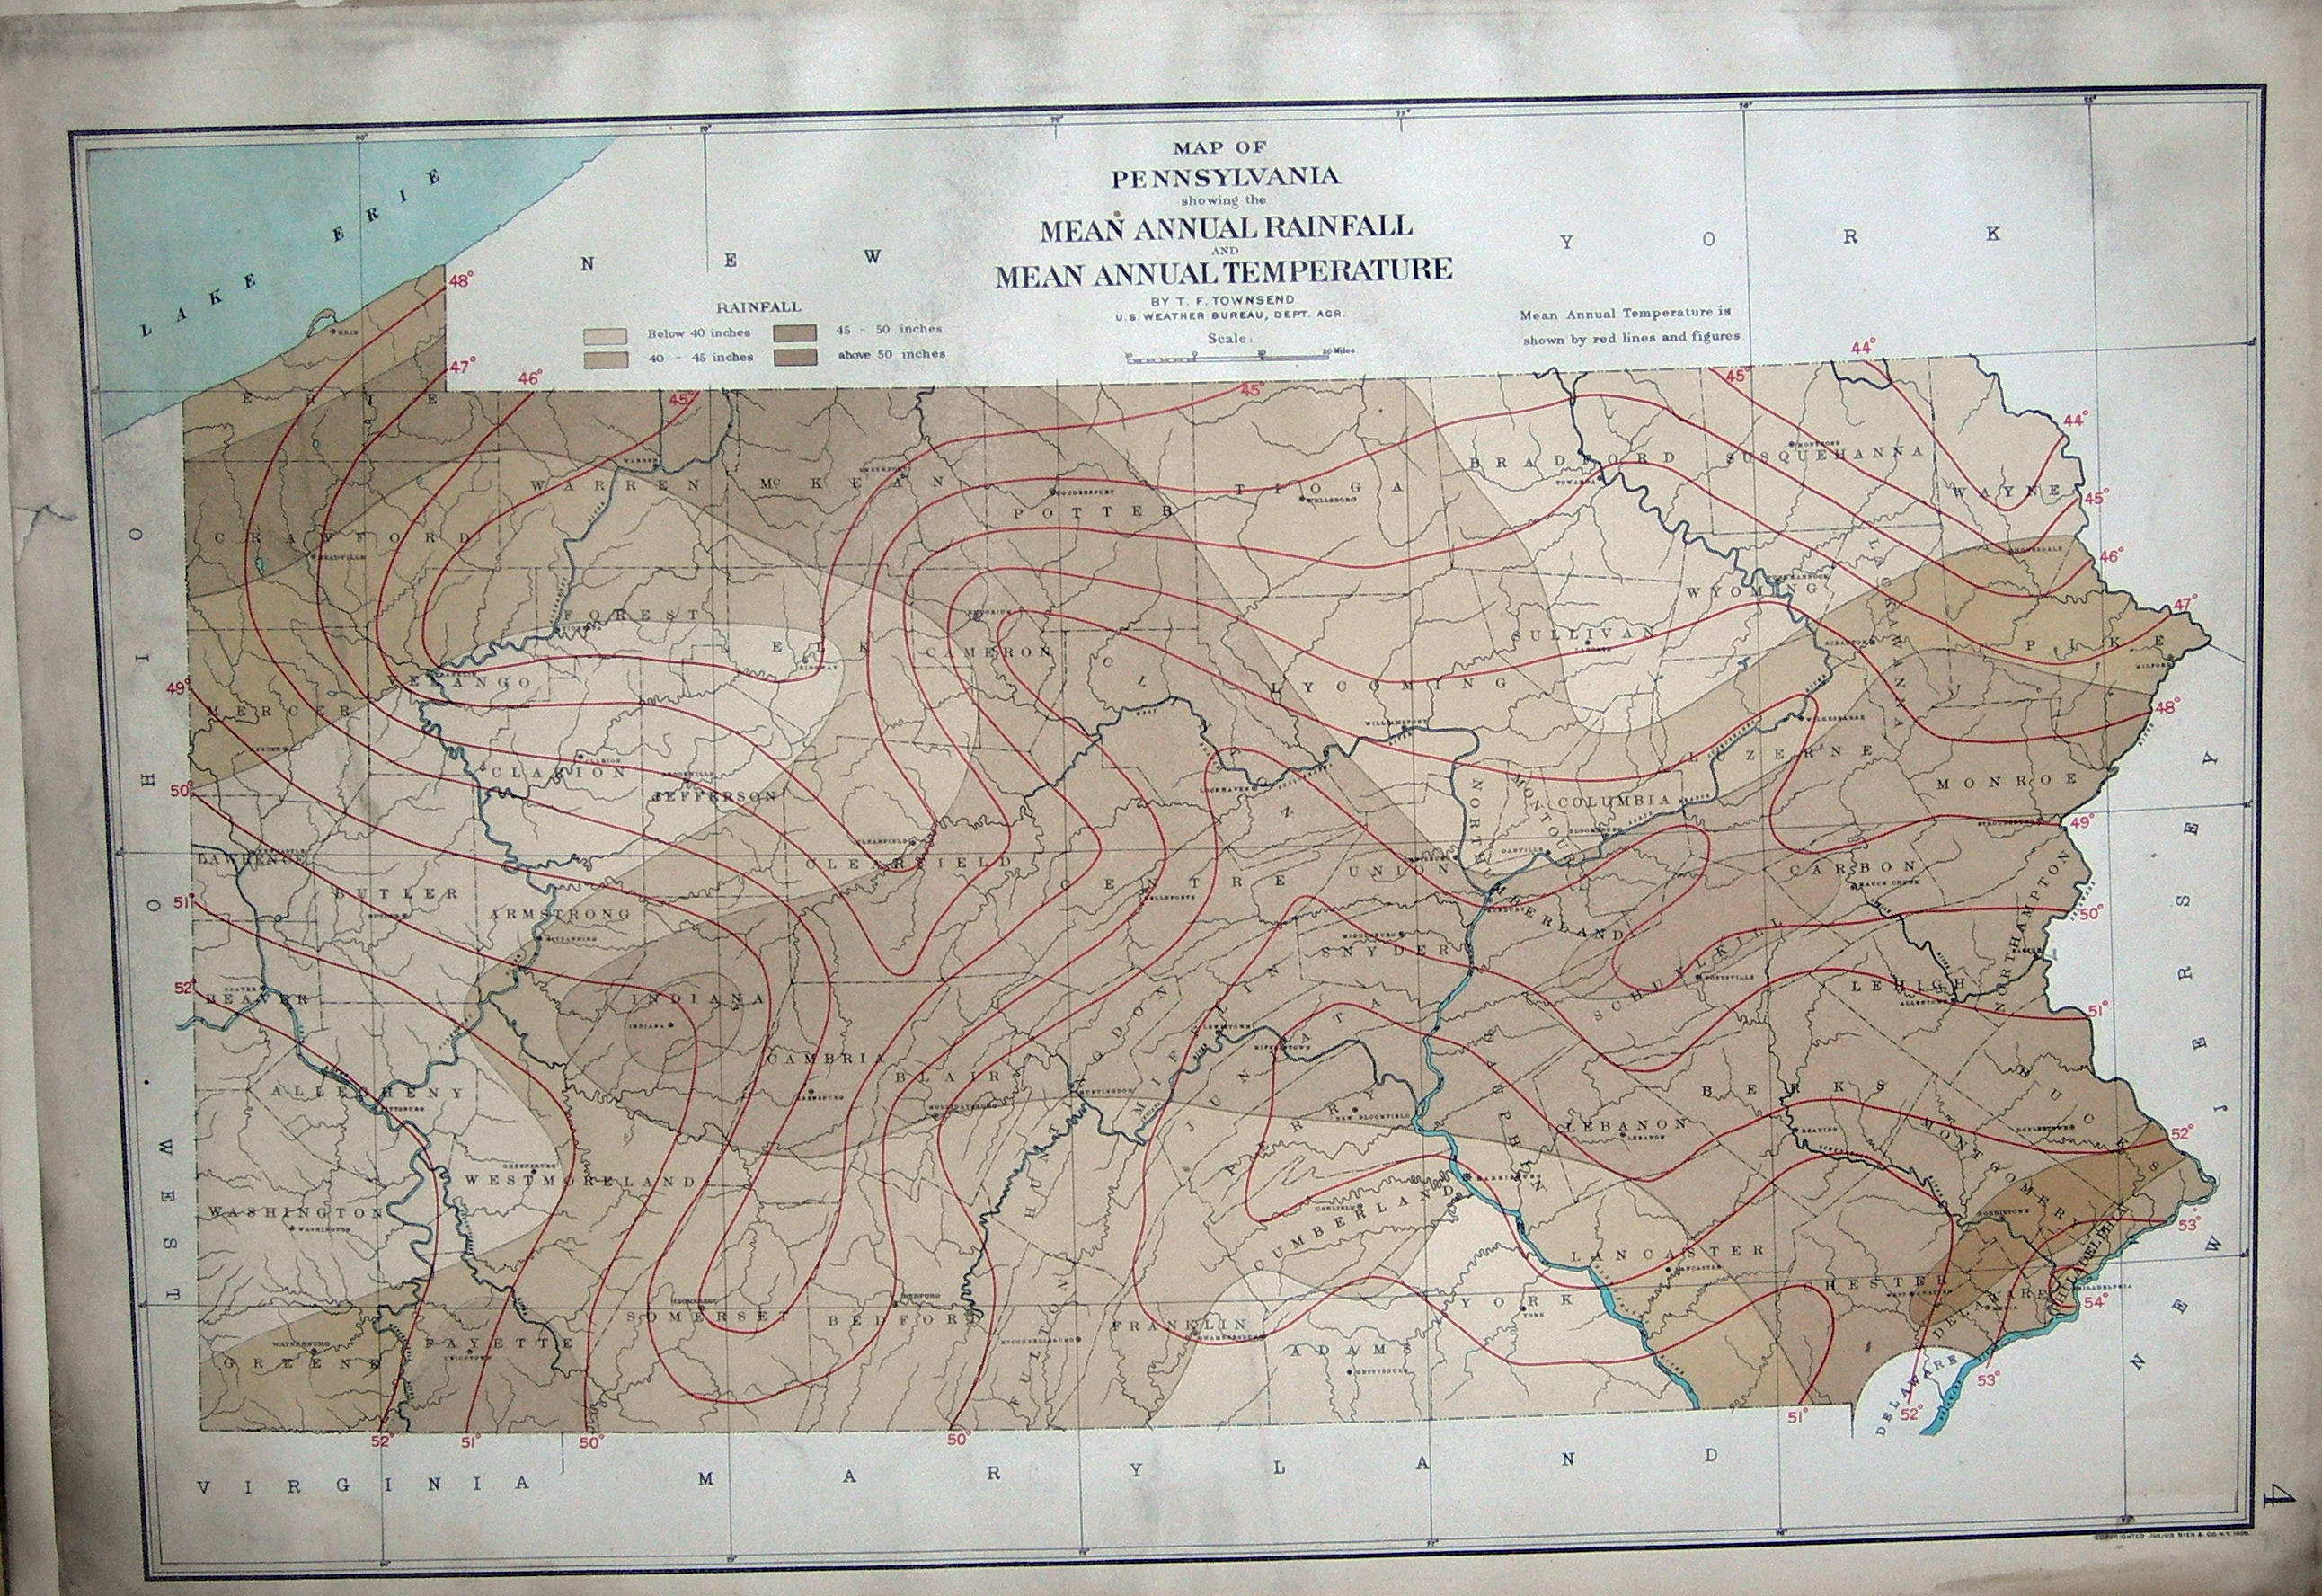 The 1900 Atlas of Pennsylvania